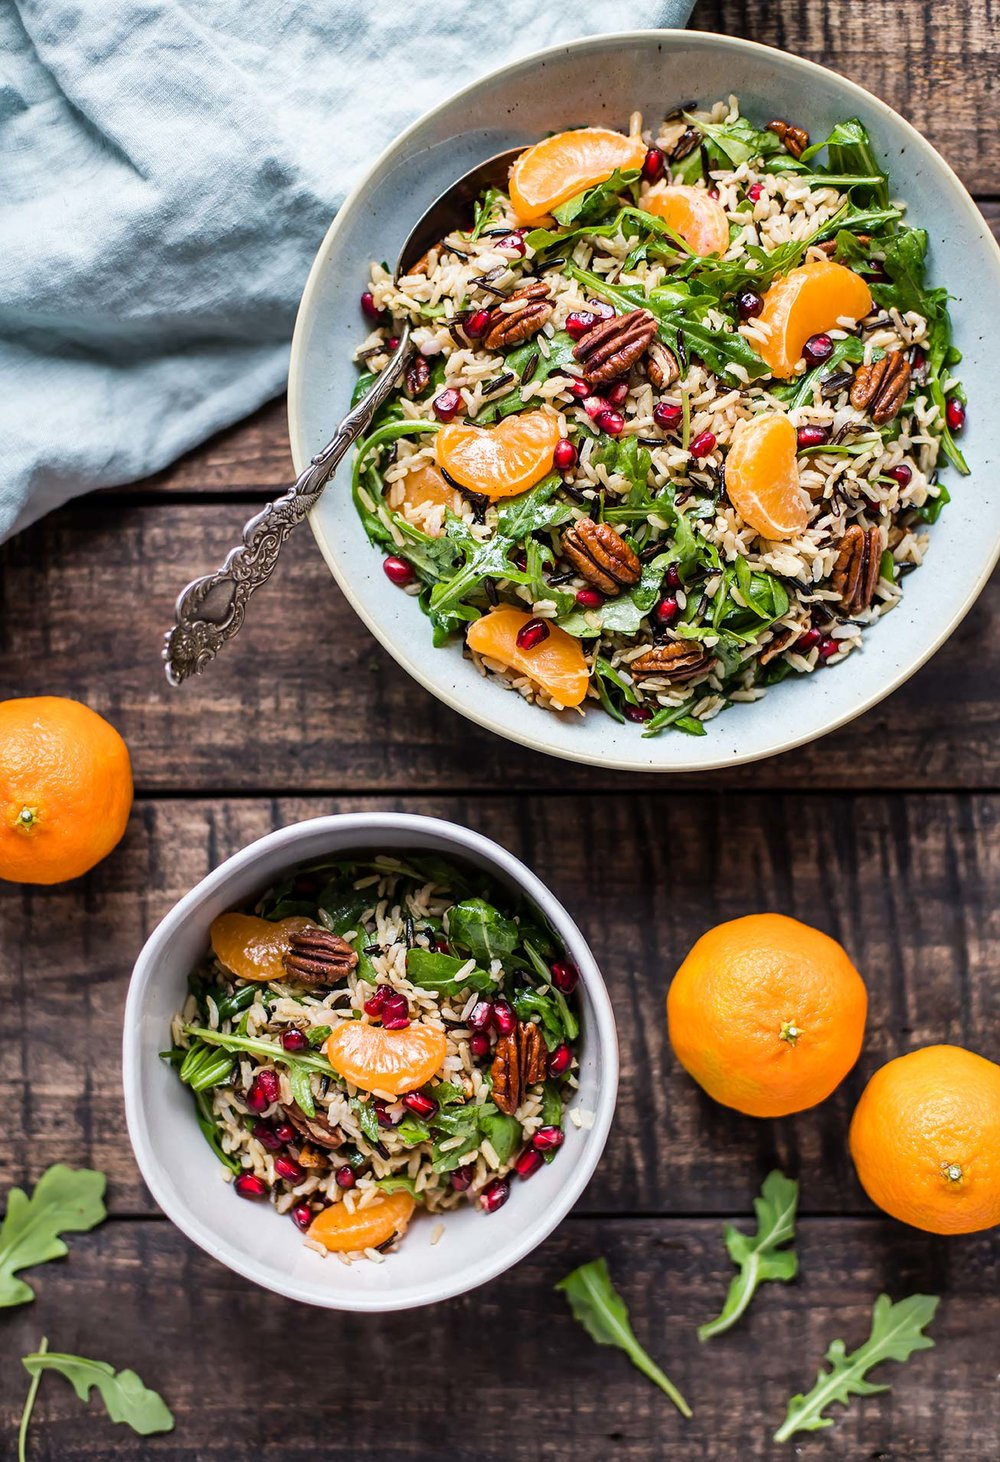 Wild Rice Salad with Satsuma Mandarins